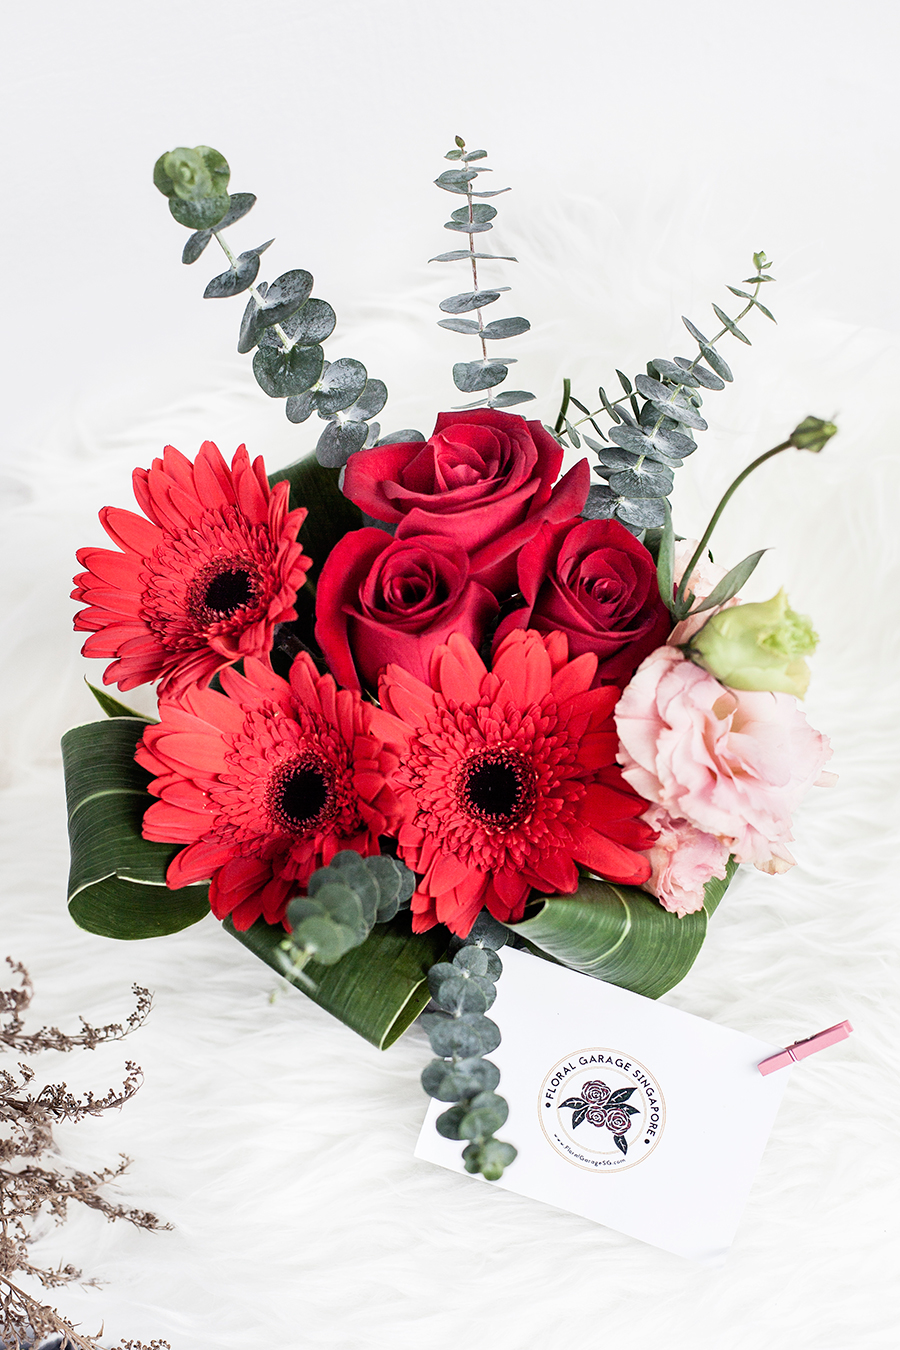 Floral arrangement from the Floral Garage SG Fruit Hamper.